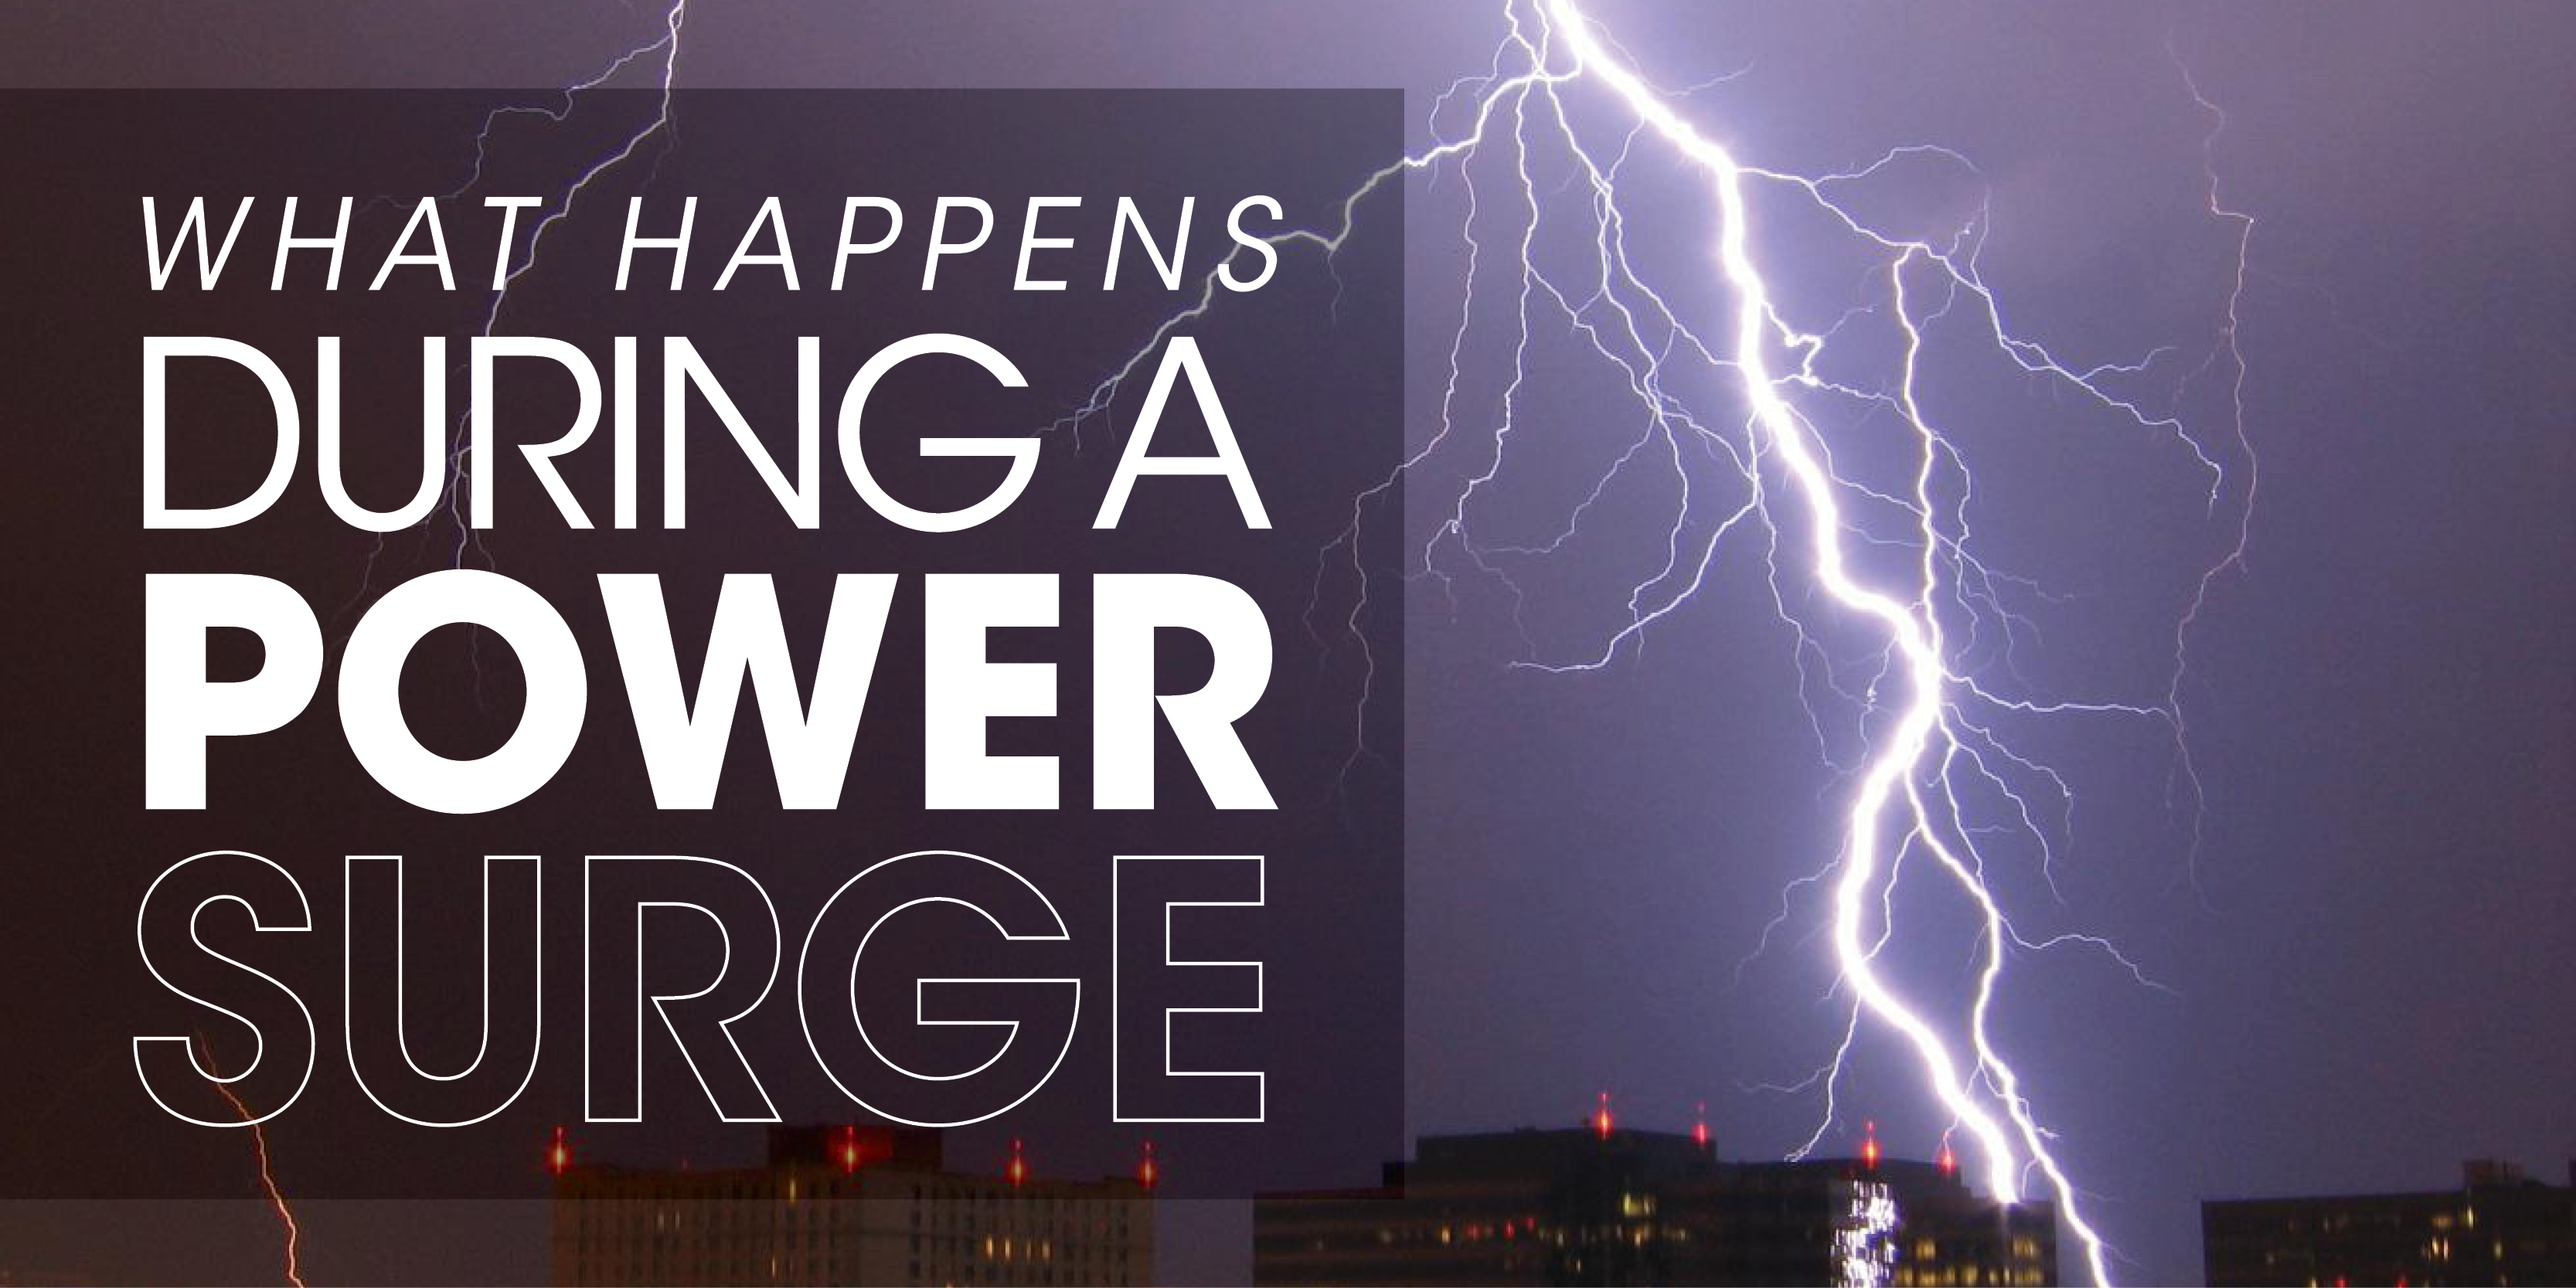 What Happens During A Power Surge